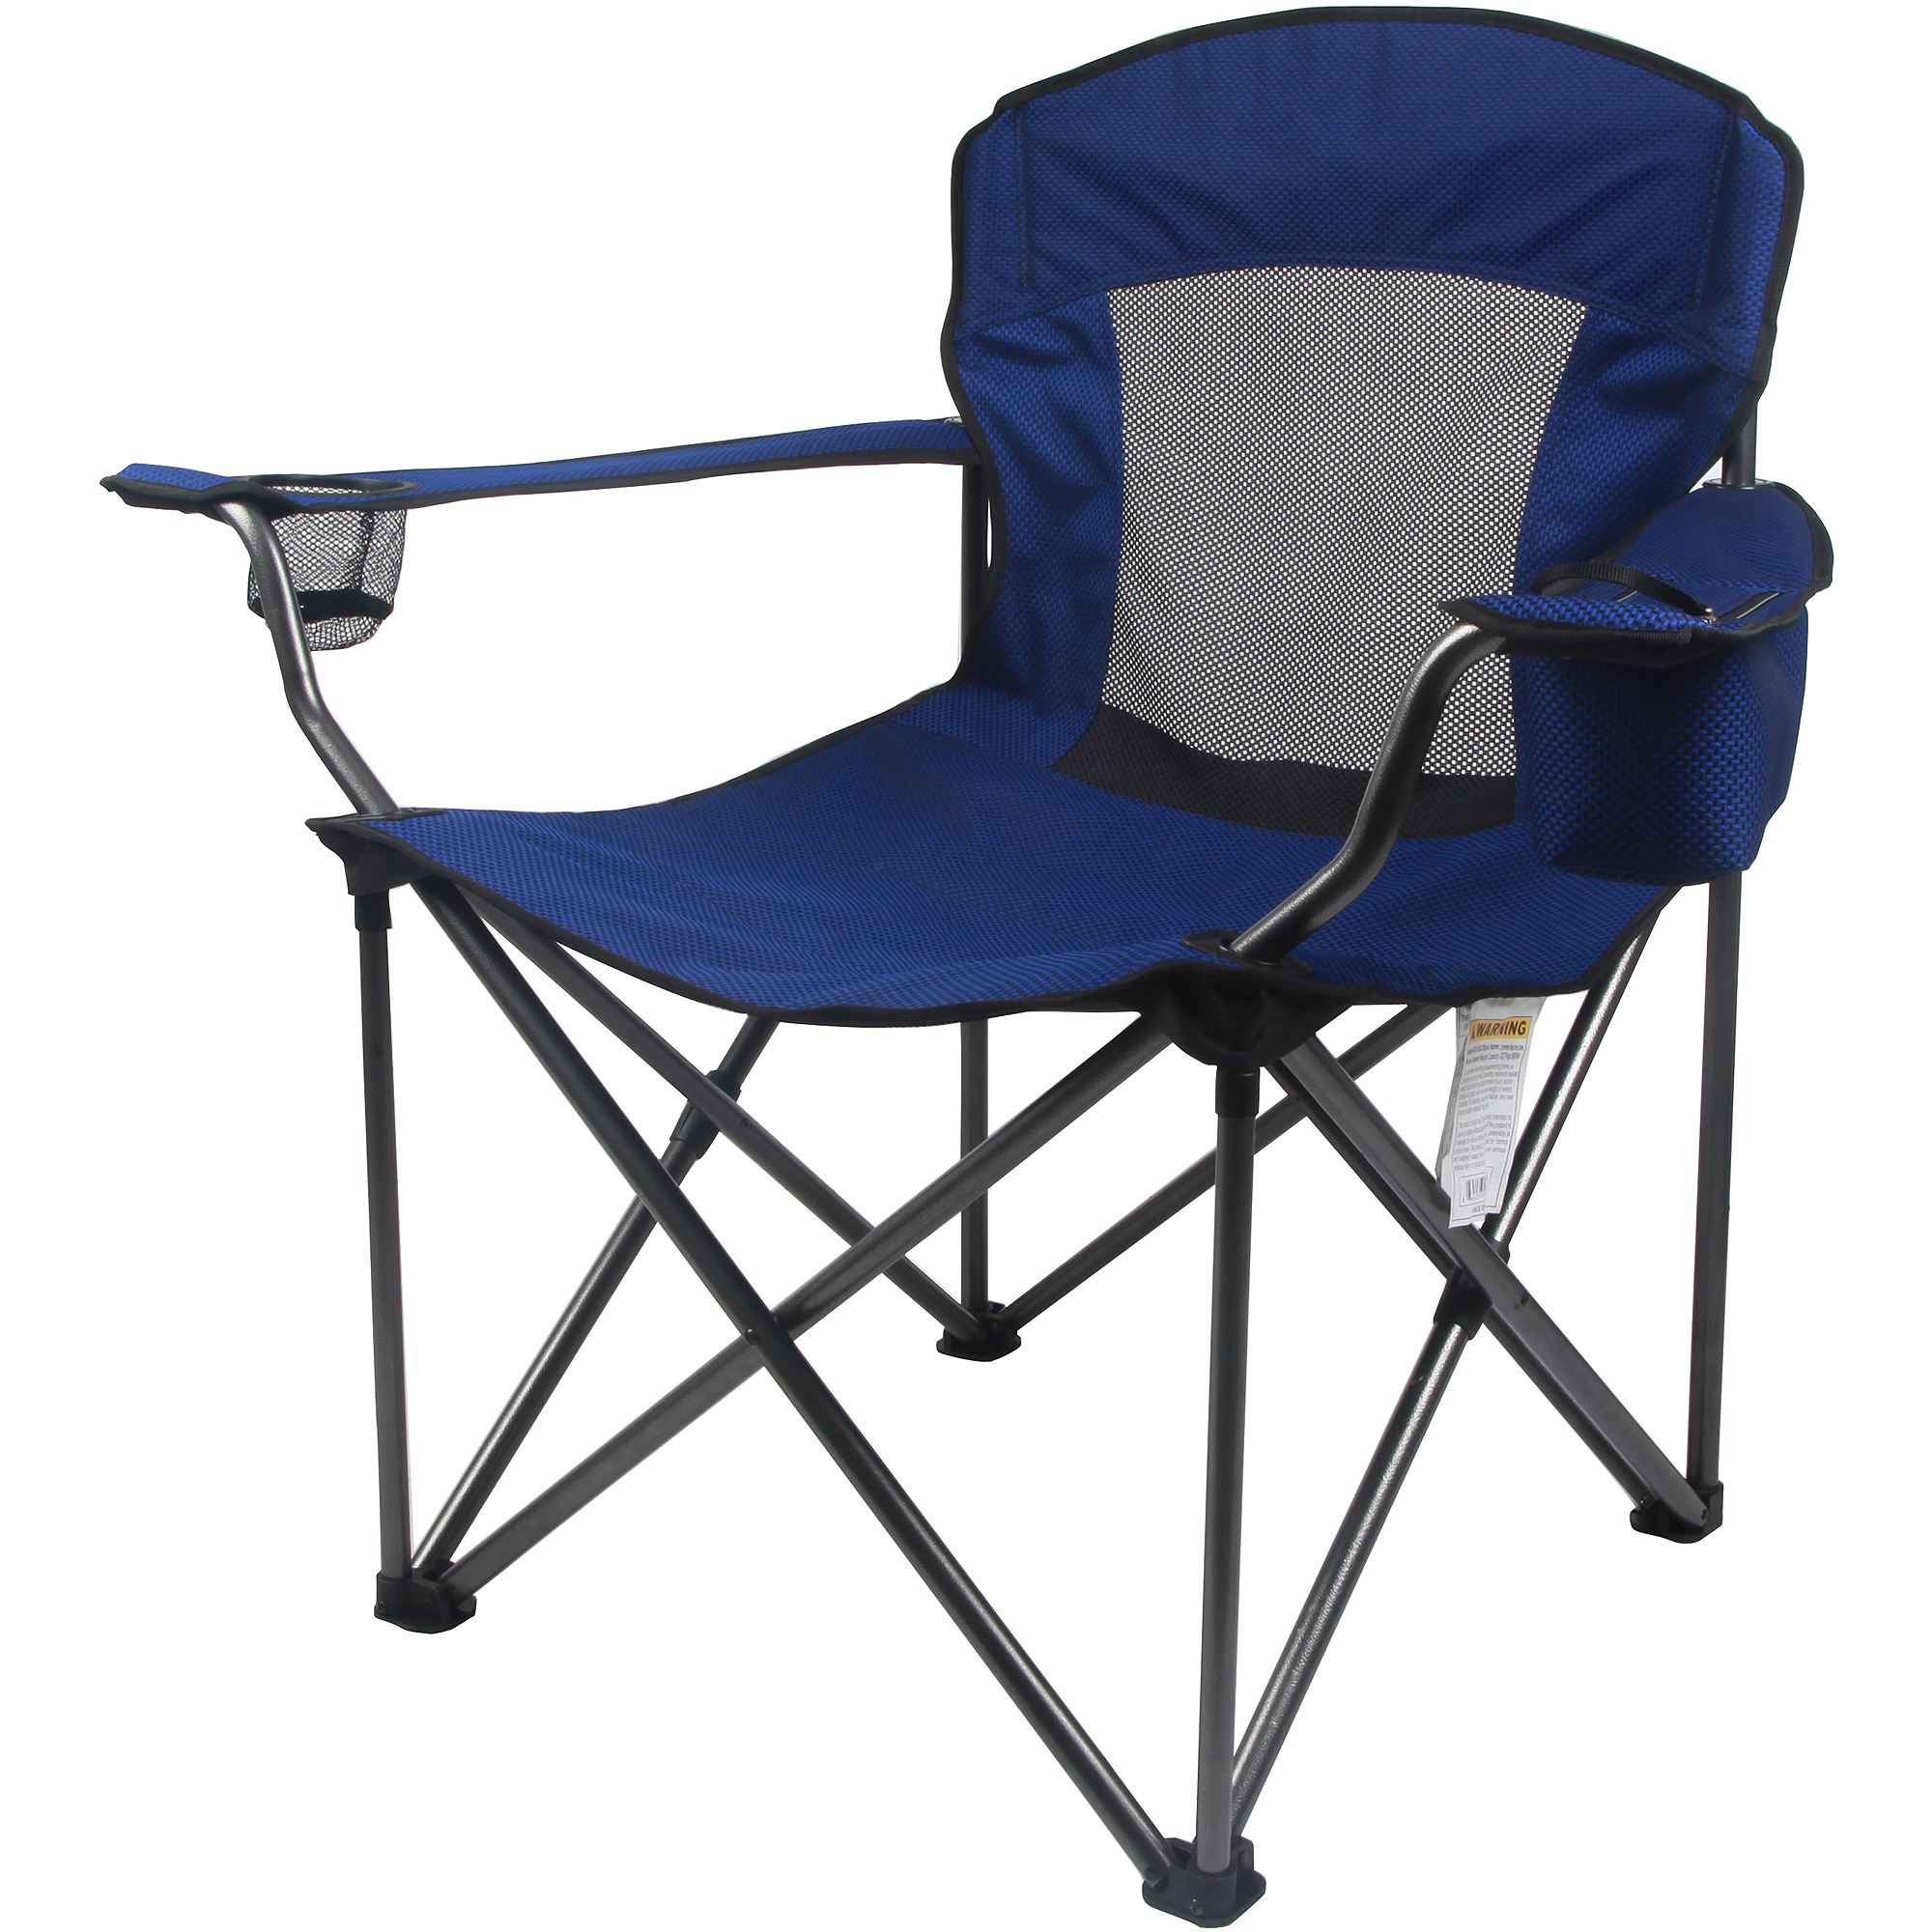 Ozark Trail XXL Sized fortable Mesh Outdoor Chair